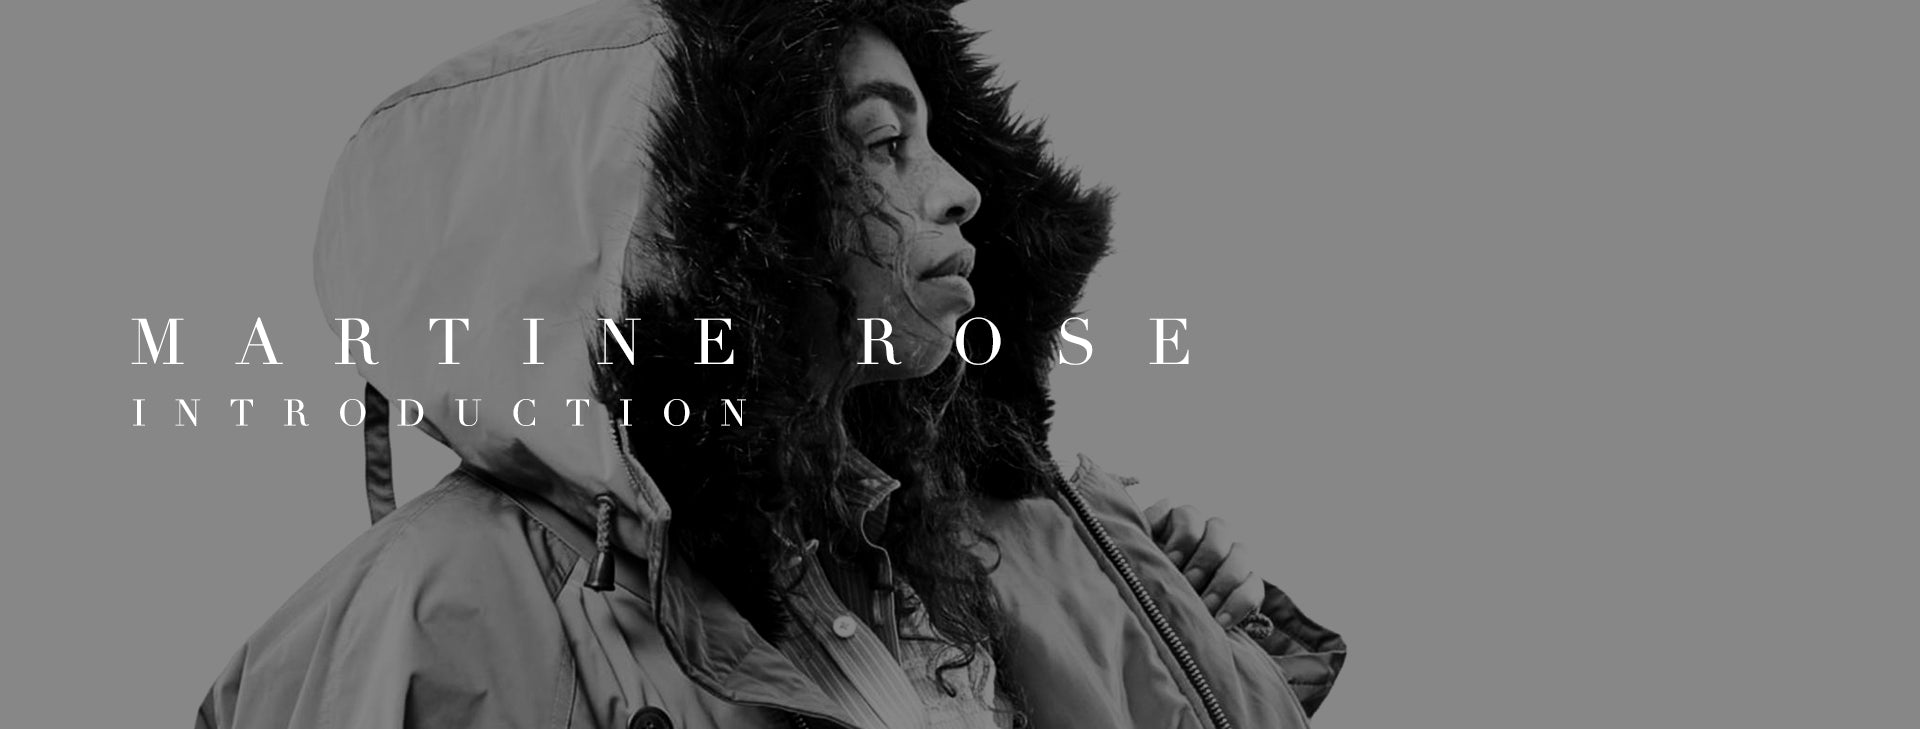 Introduction: Martine Rose